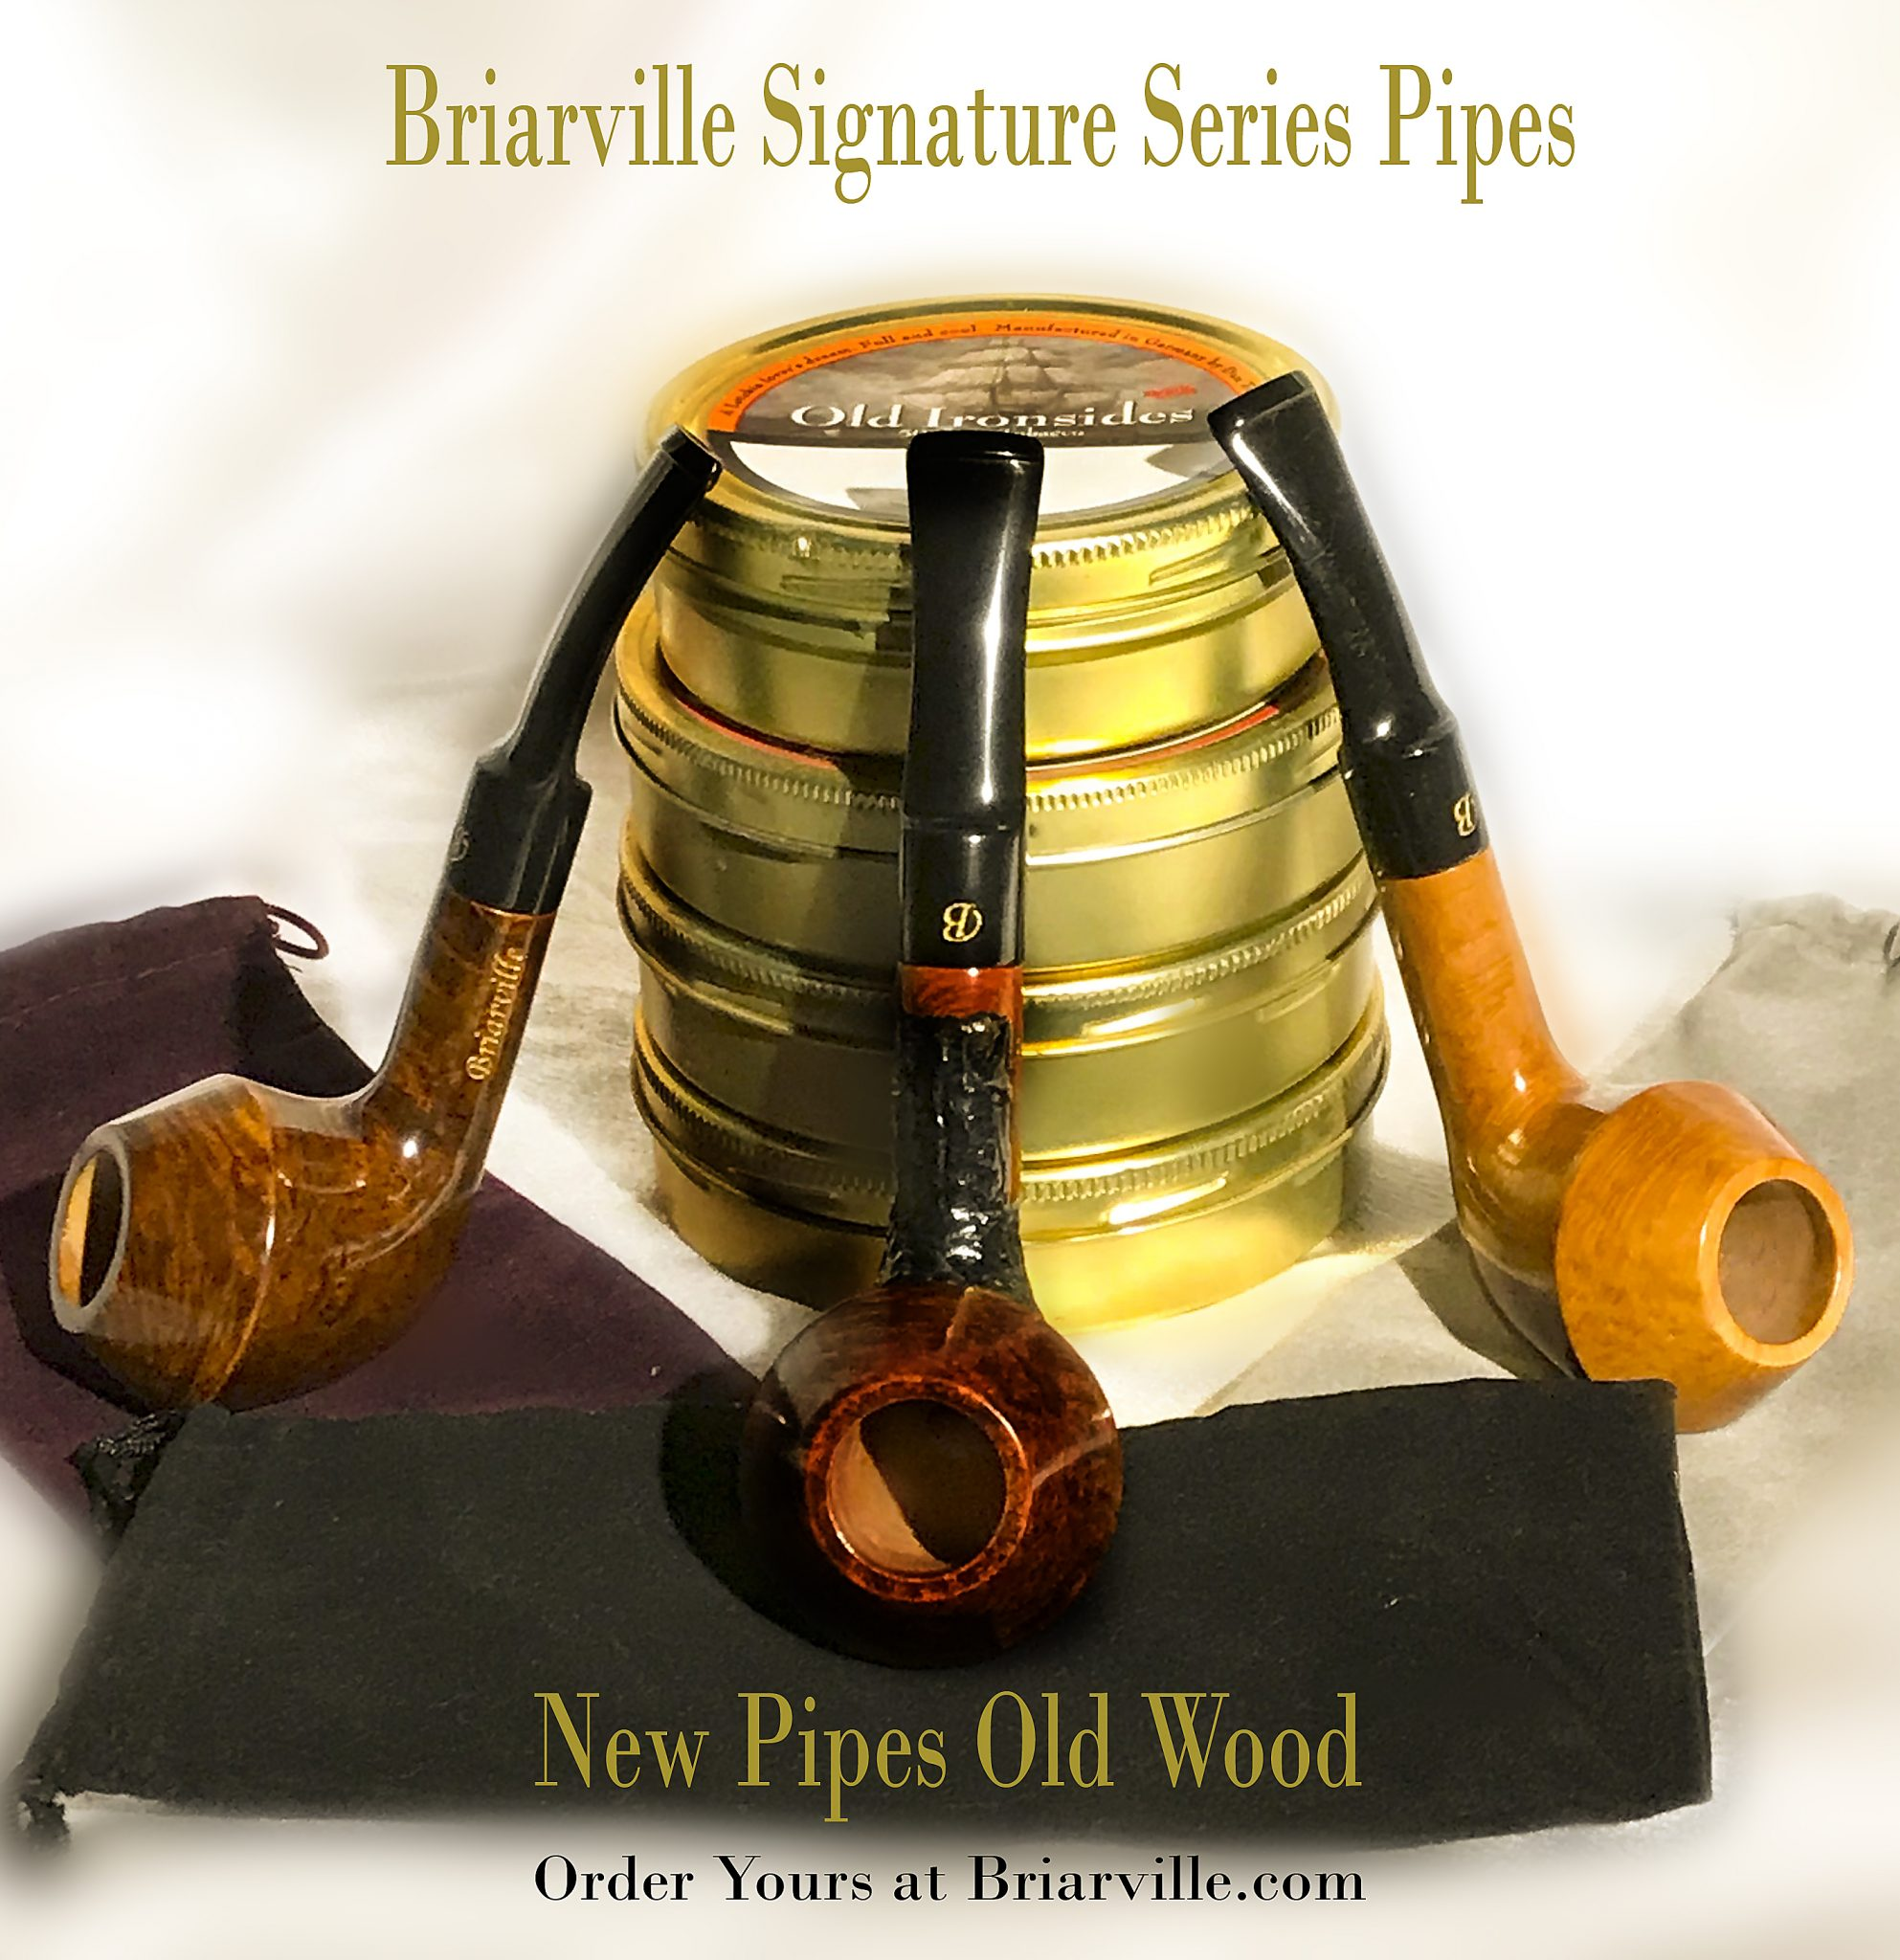 Briarville Signature Series